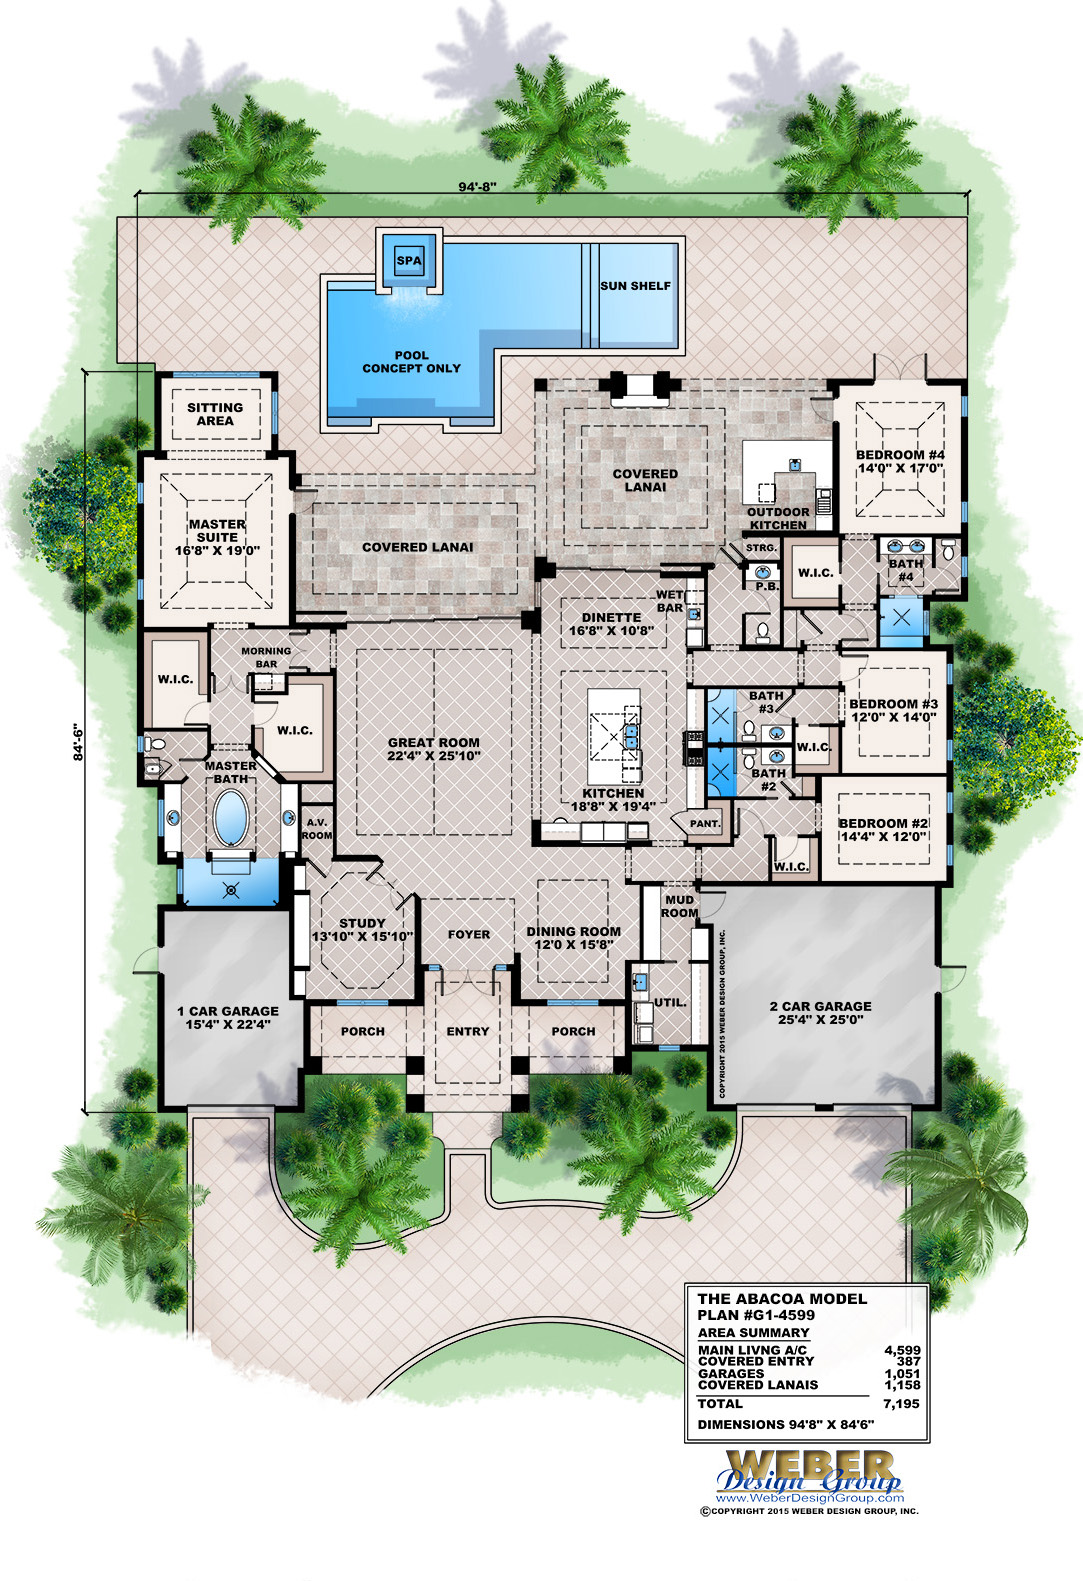 Caribbean island style home plans for Island style home plans